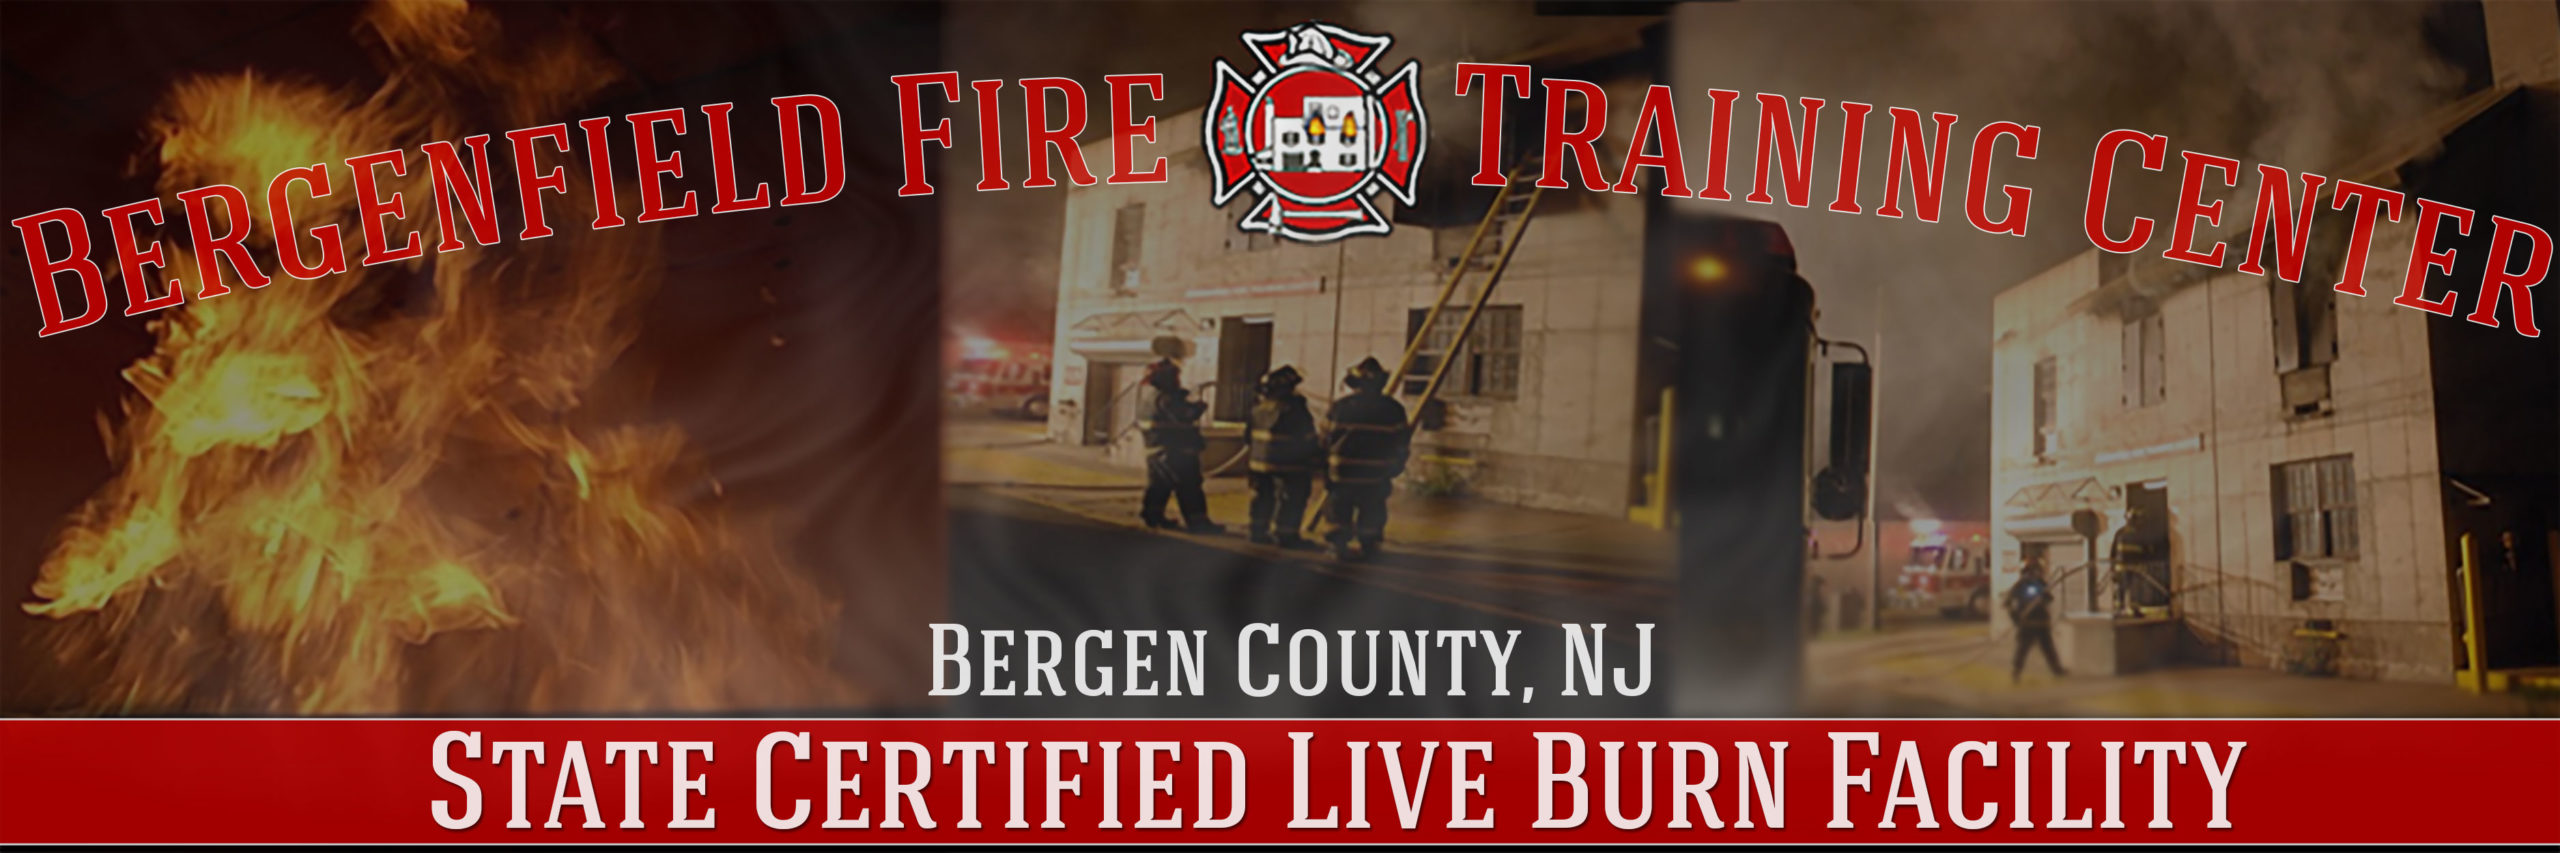 Bergenfield Fire Training Center